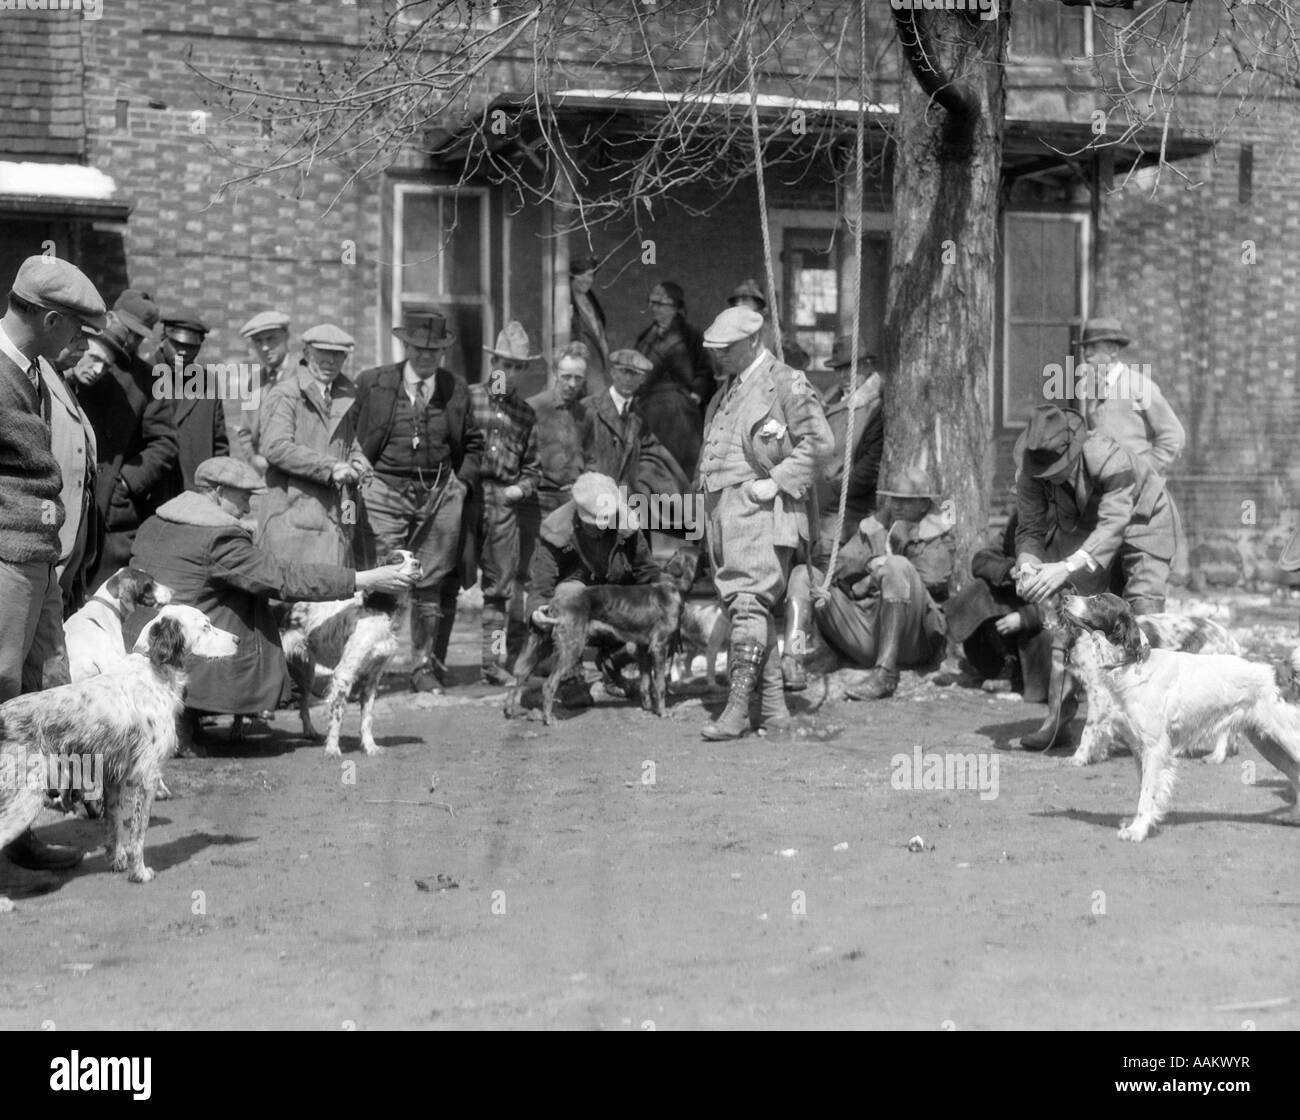 1920s 1930s HUNTING DOGS WITH TRAINERS ASSEMBLED FOR FIELD TRIALS IN FRONT OF BRICK BUILDING - Stock Image